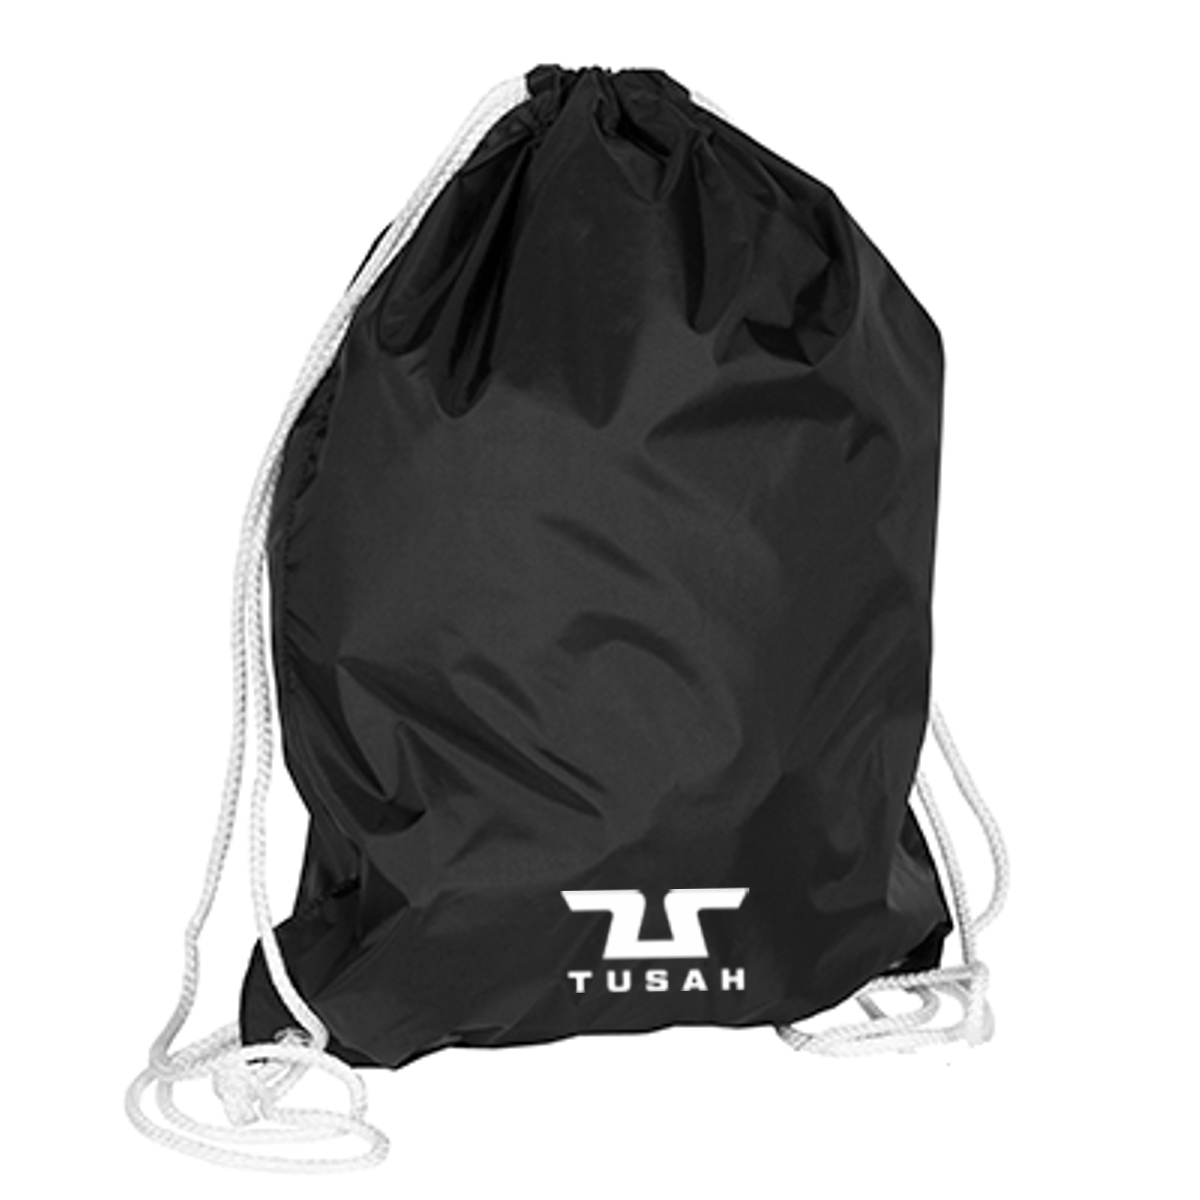 Tusah Plain Sport Bag